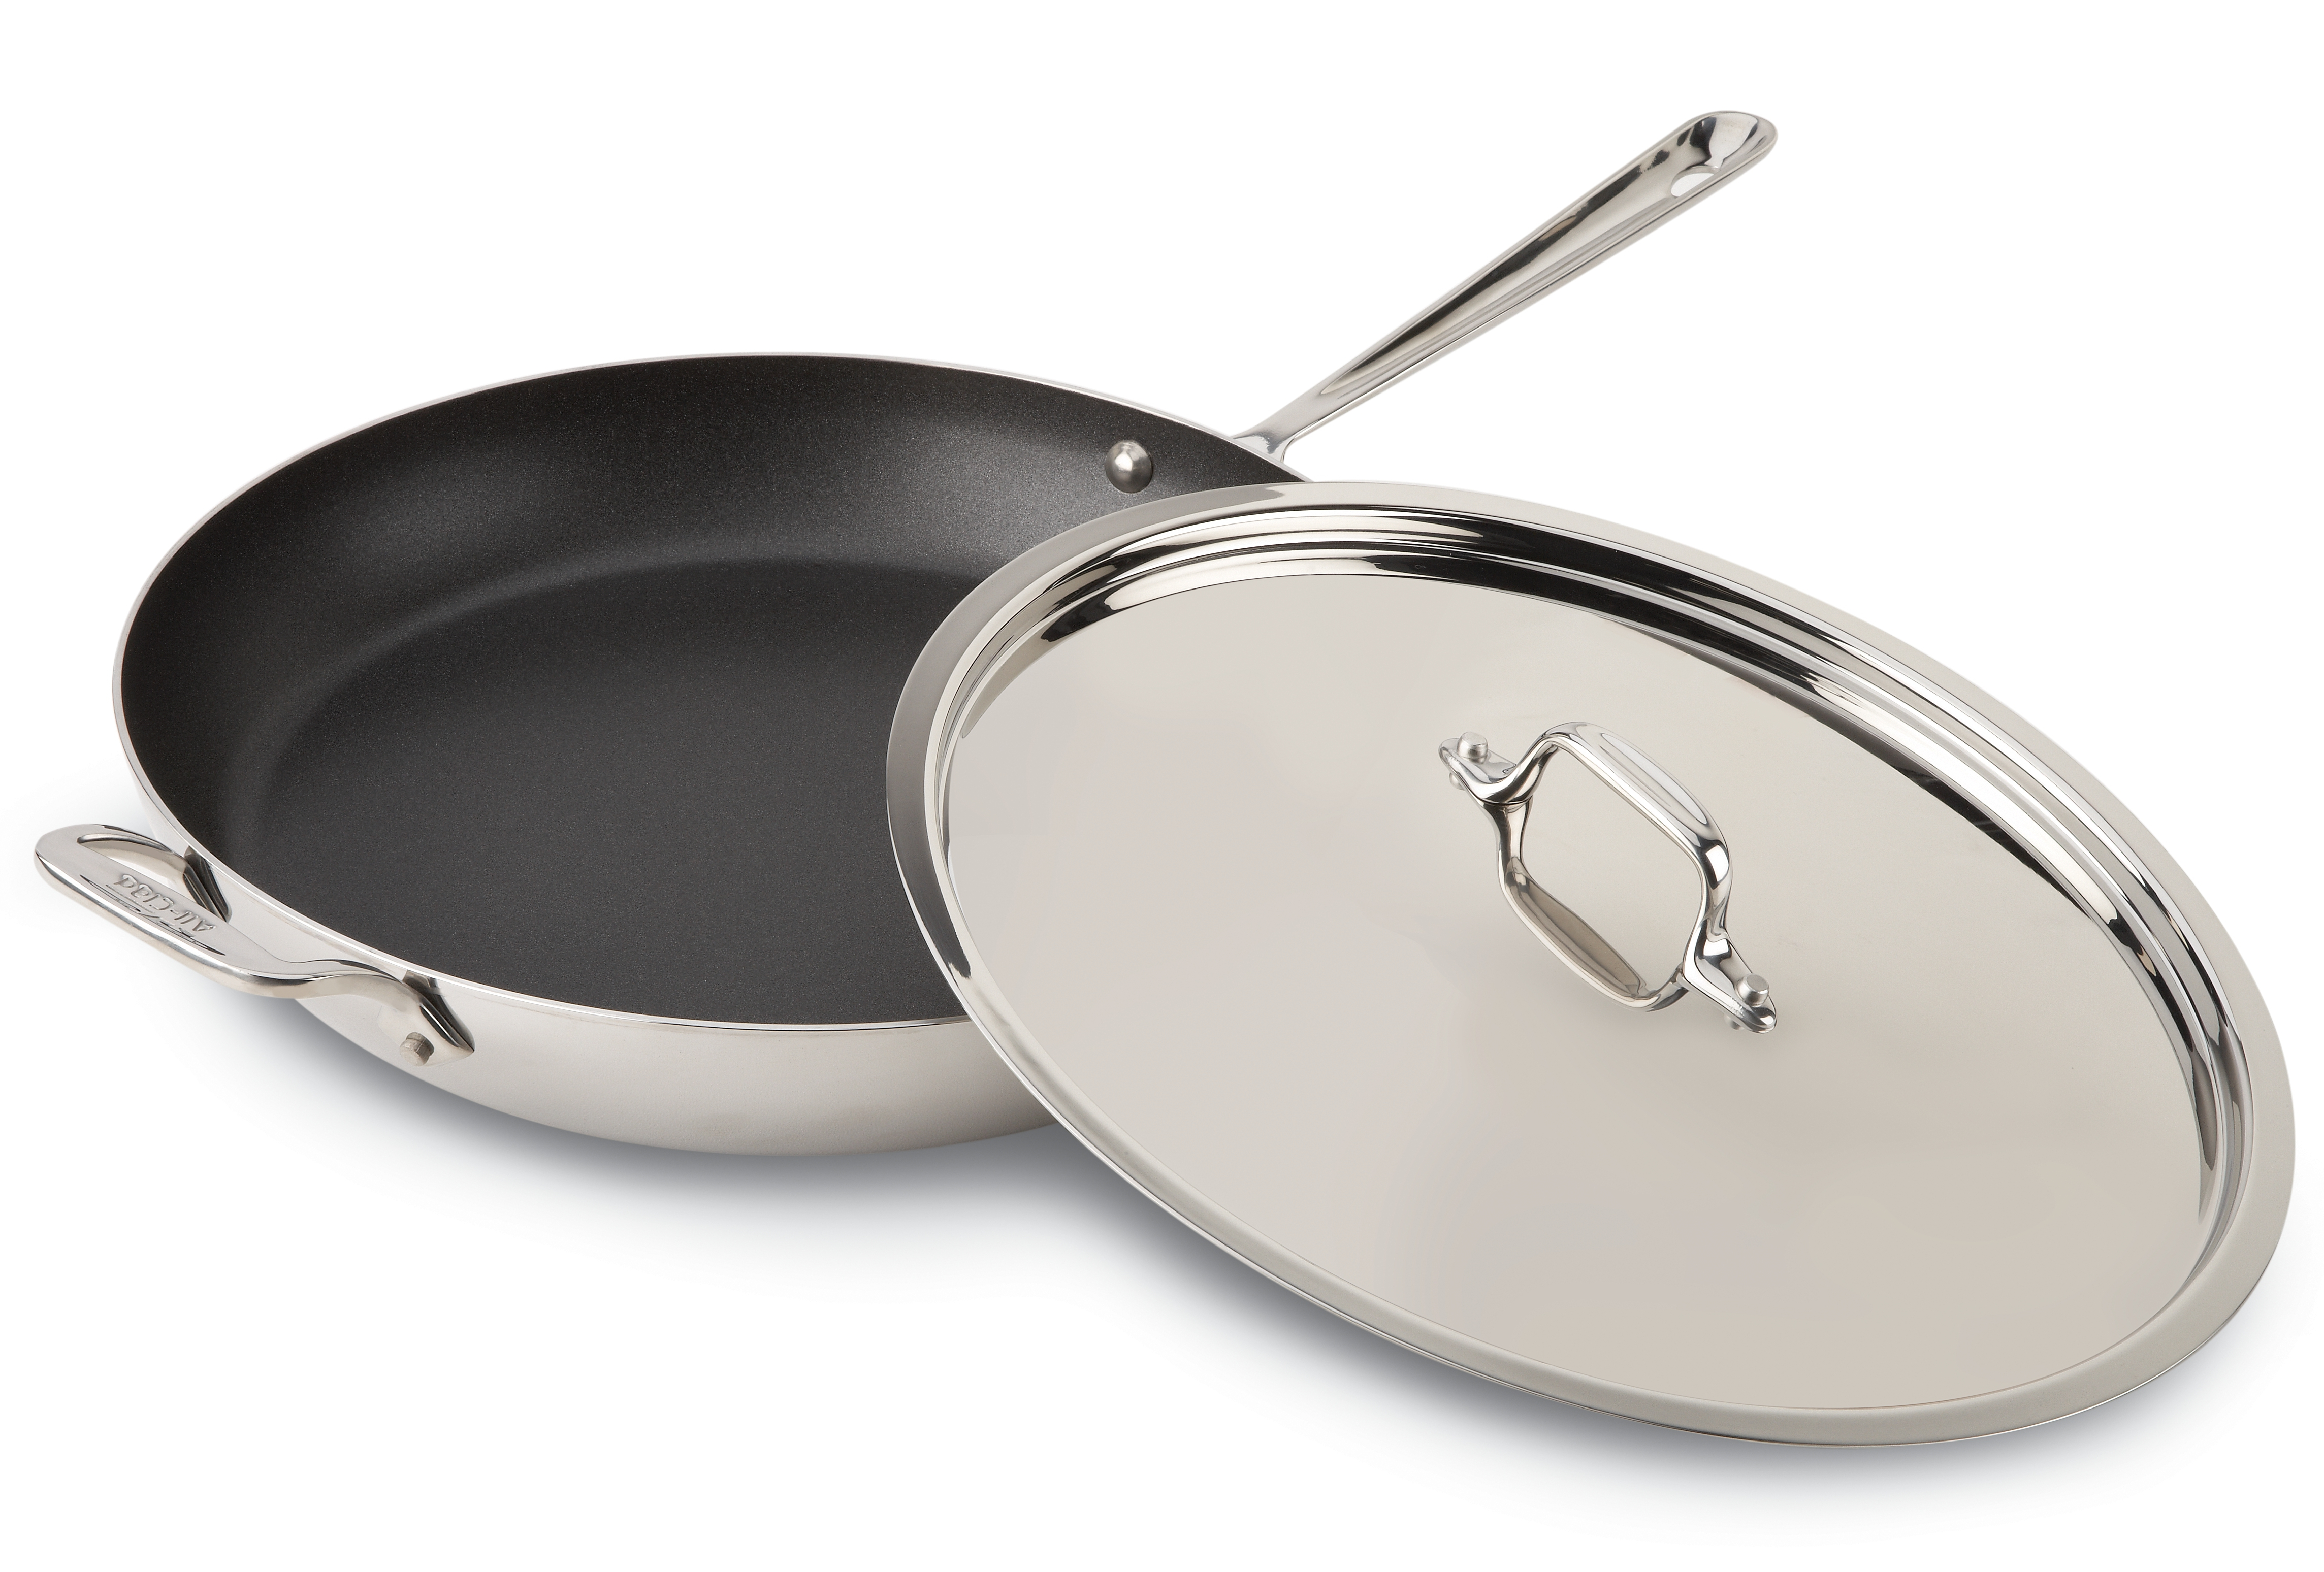 All-Clad 18/10 Stainless Steel Nonstick French Skillet with Loop Handle and Lid, 13 Inch